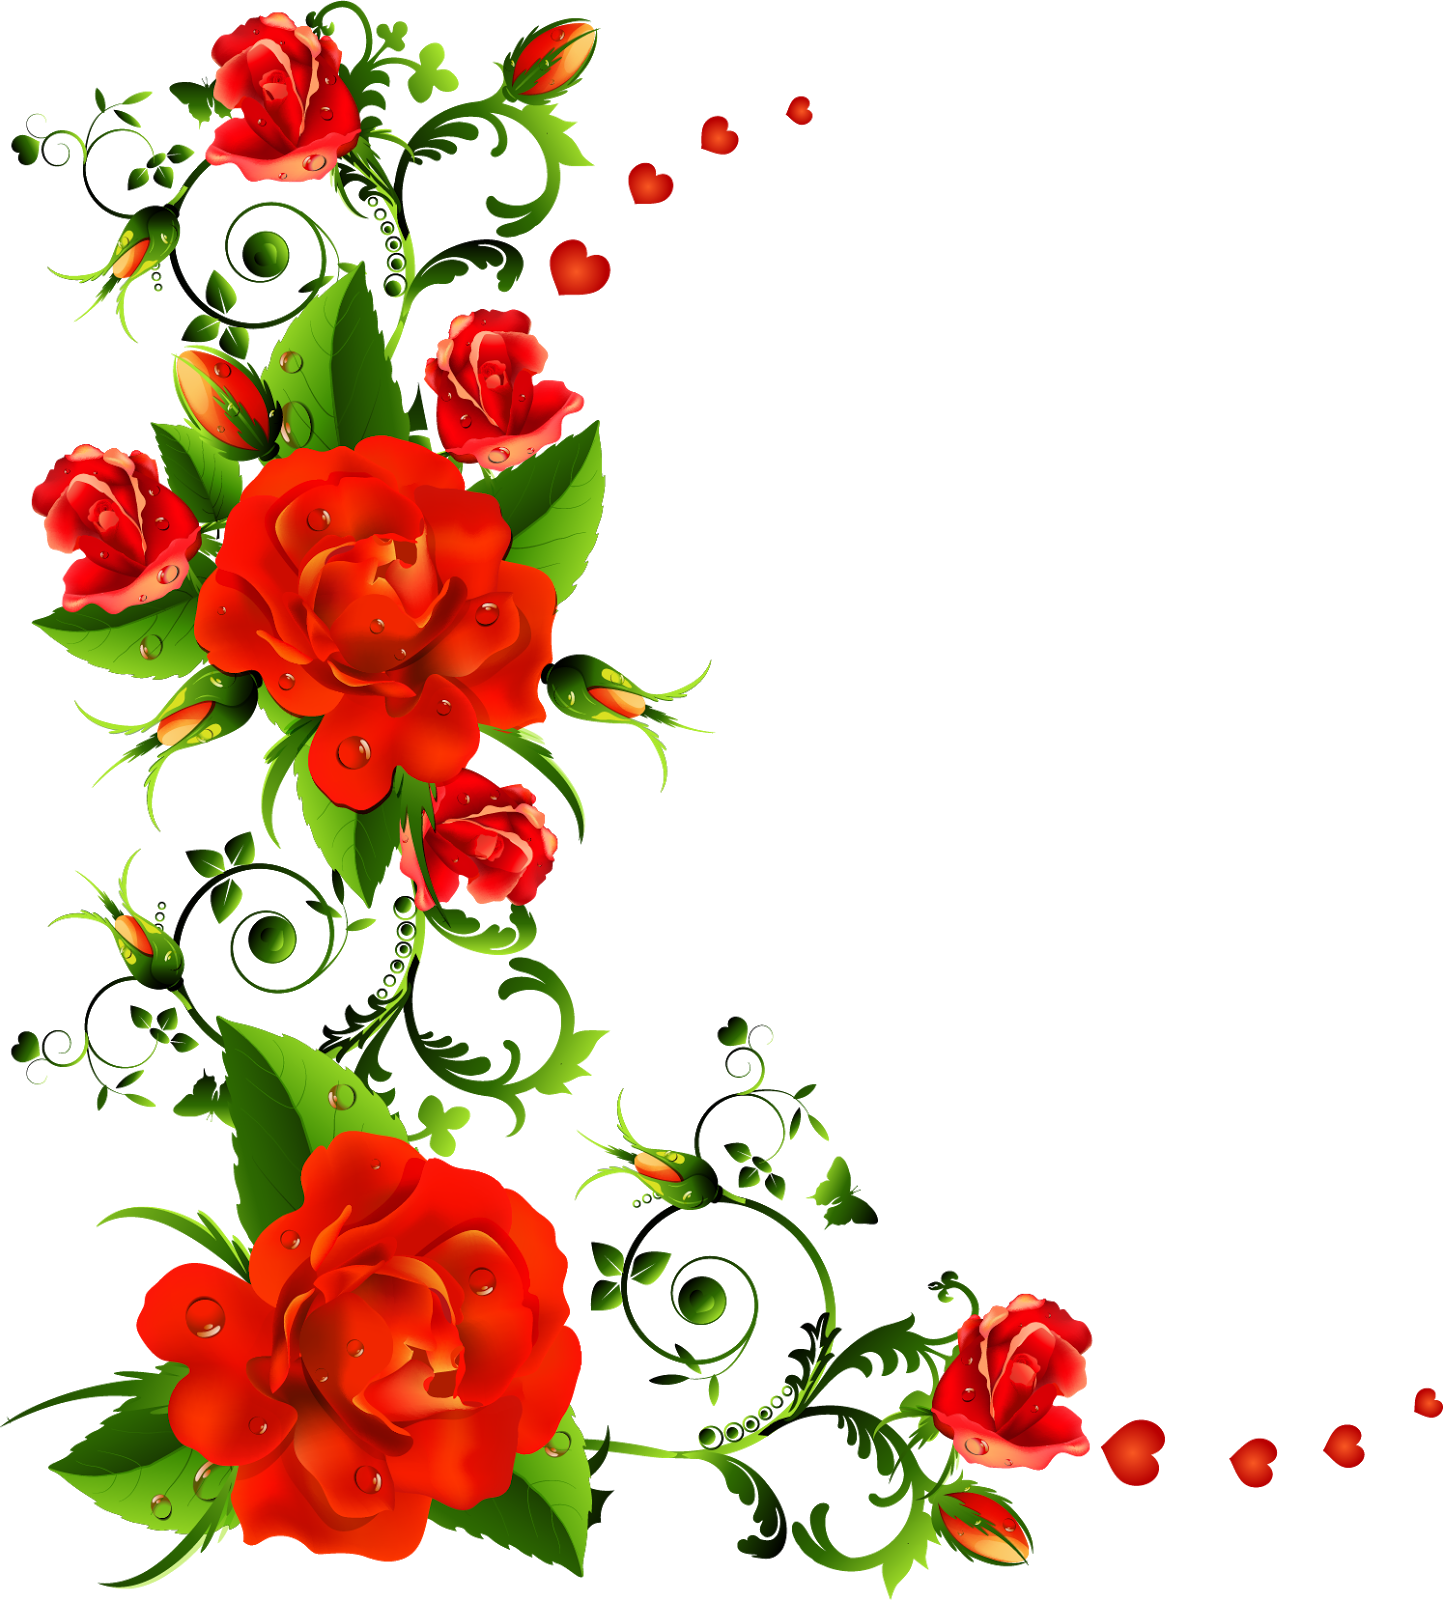 Download Free Rose Flower Border Free Download Png Hd Icon Favicon Freepngimg